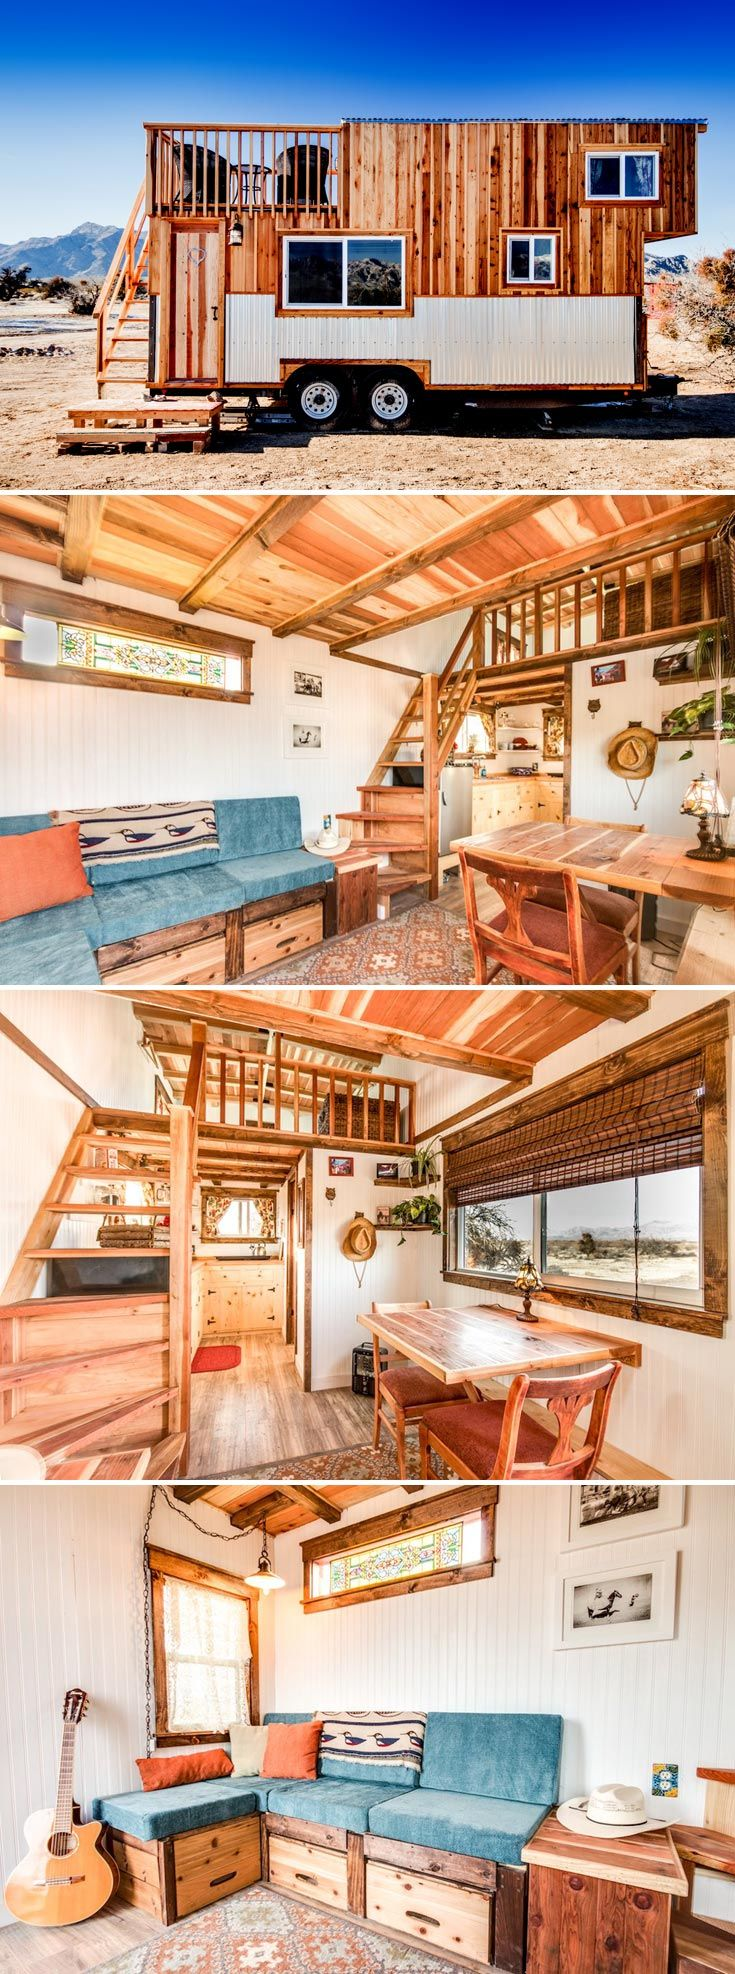 The Peacock is one of two tiny houses available for nightly rental at the Sandy Valley Ranch located an hour outside Las Vegas.